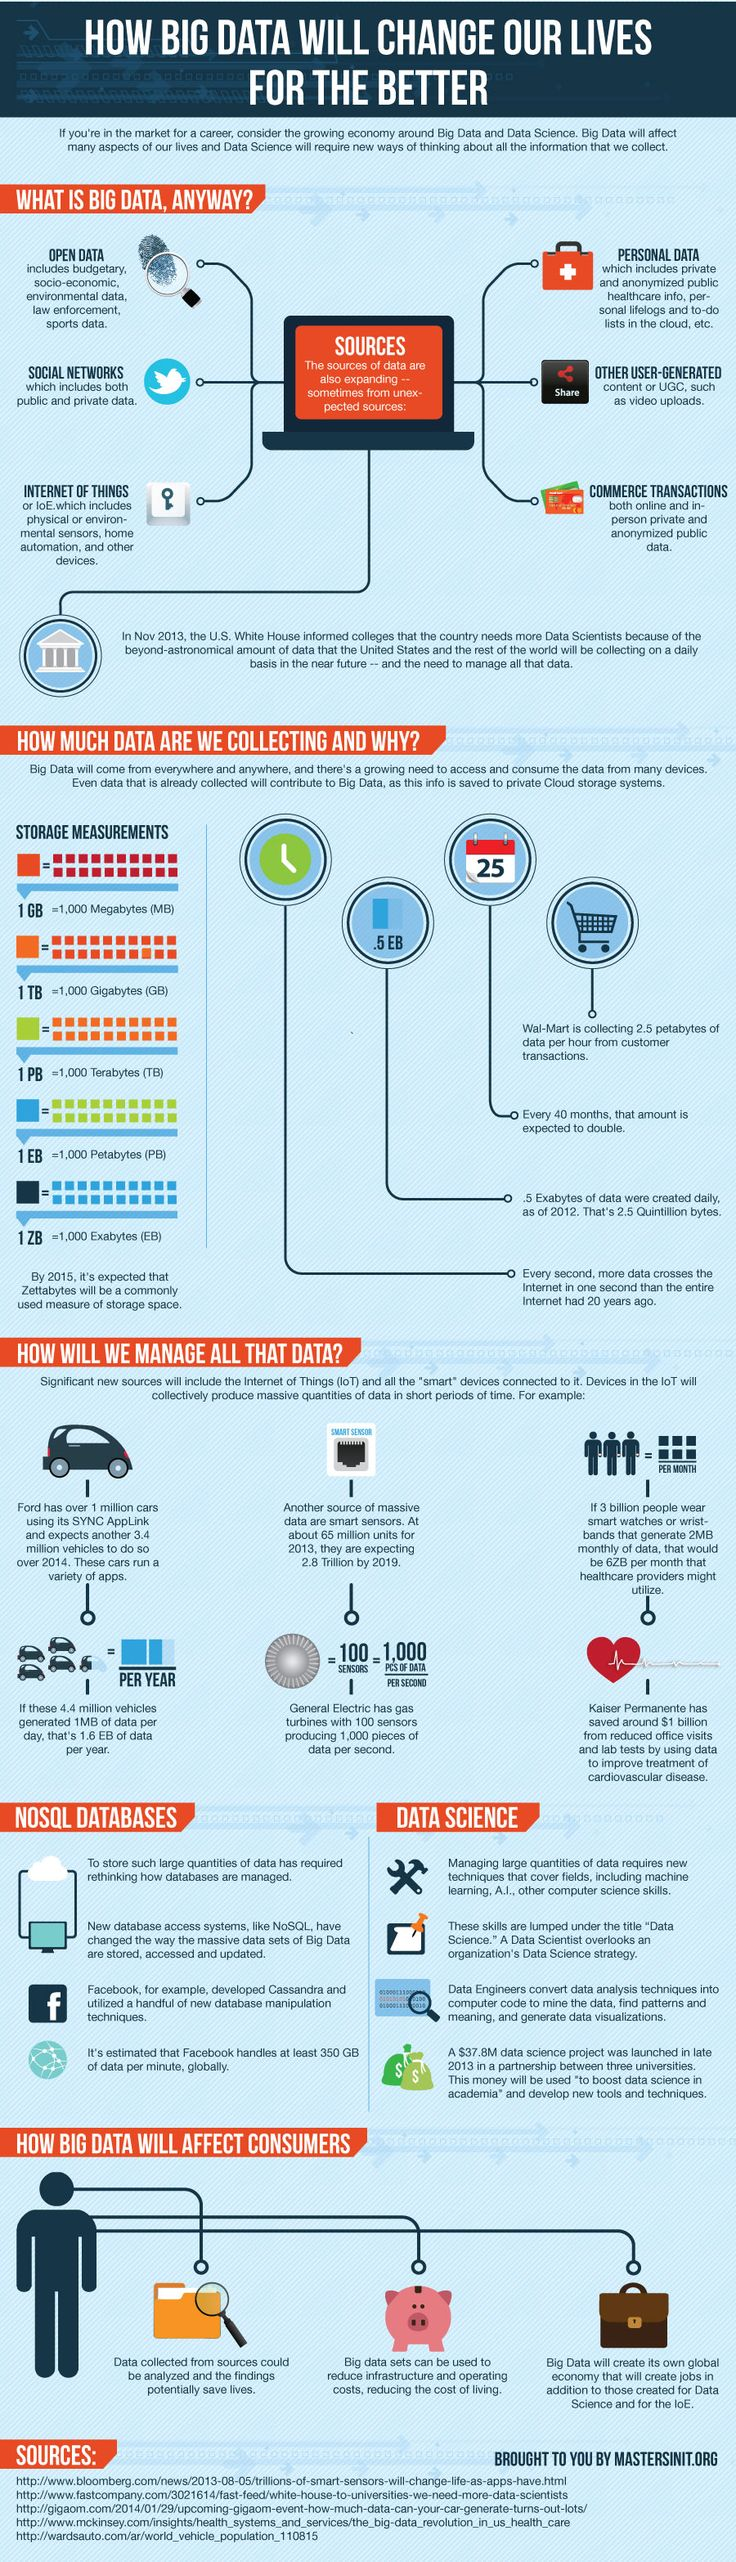 How #BigData Will Change Our Lives For The Better - #infographic